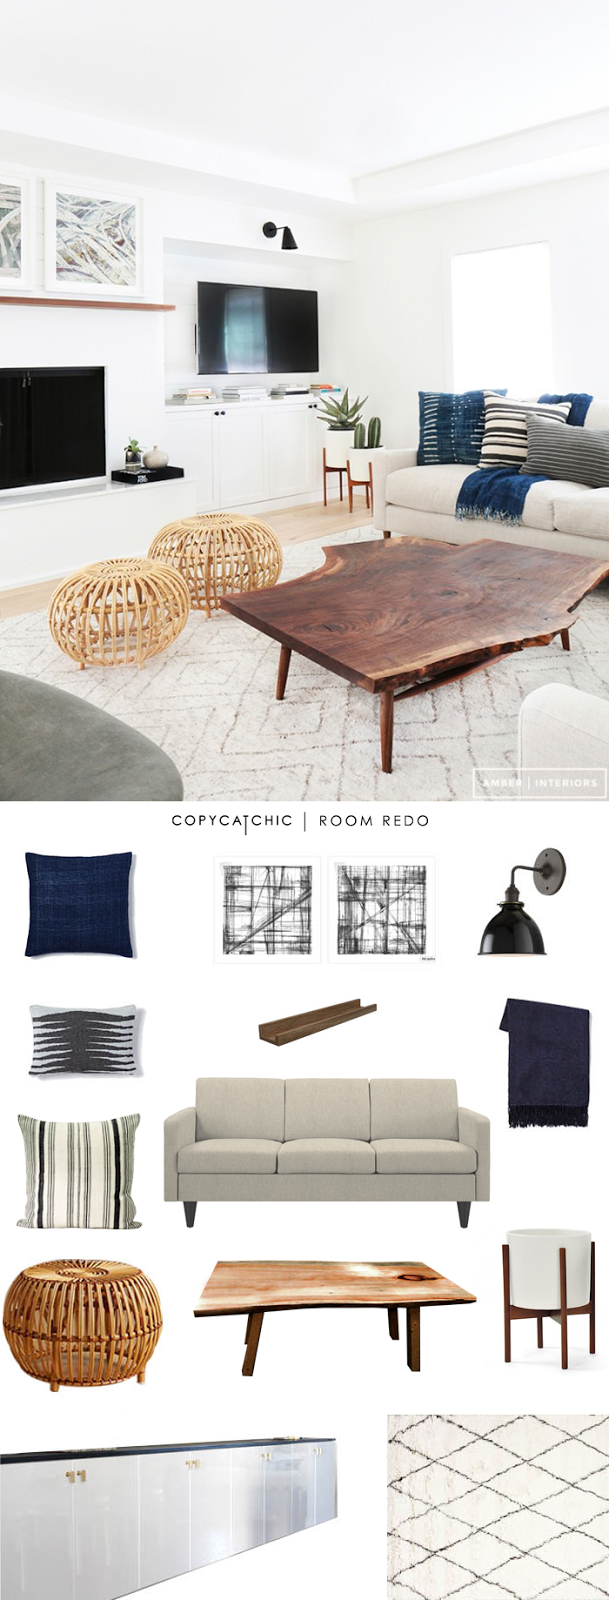 Copy cat chic room redo cool and calm living room copy for Calm living room ideas